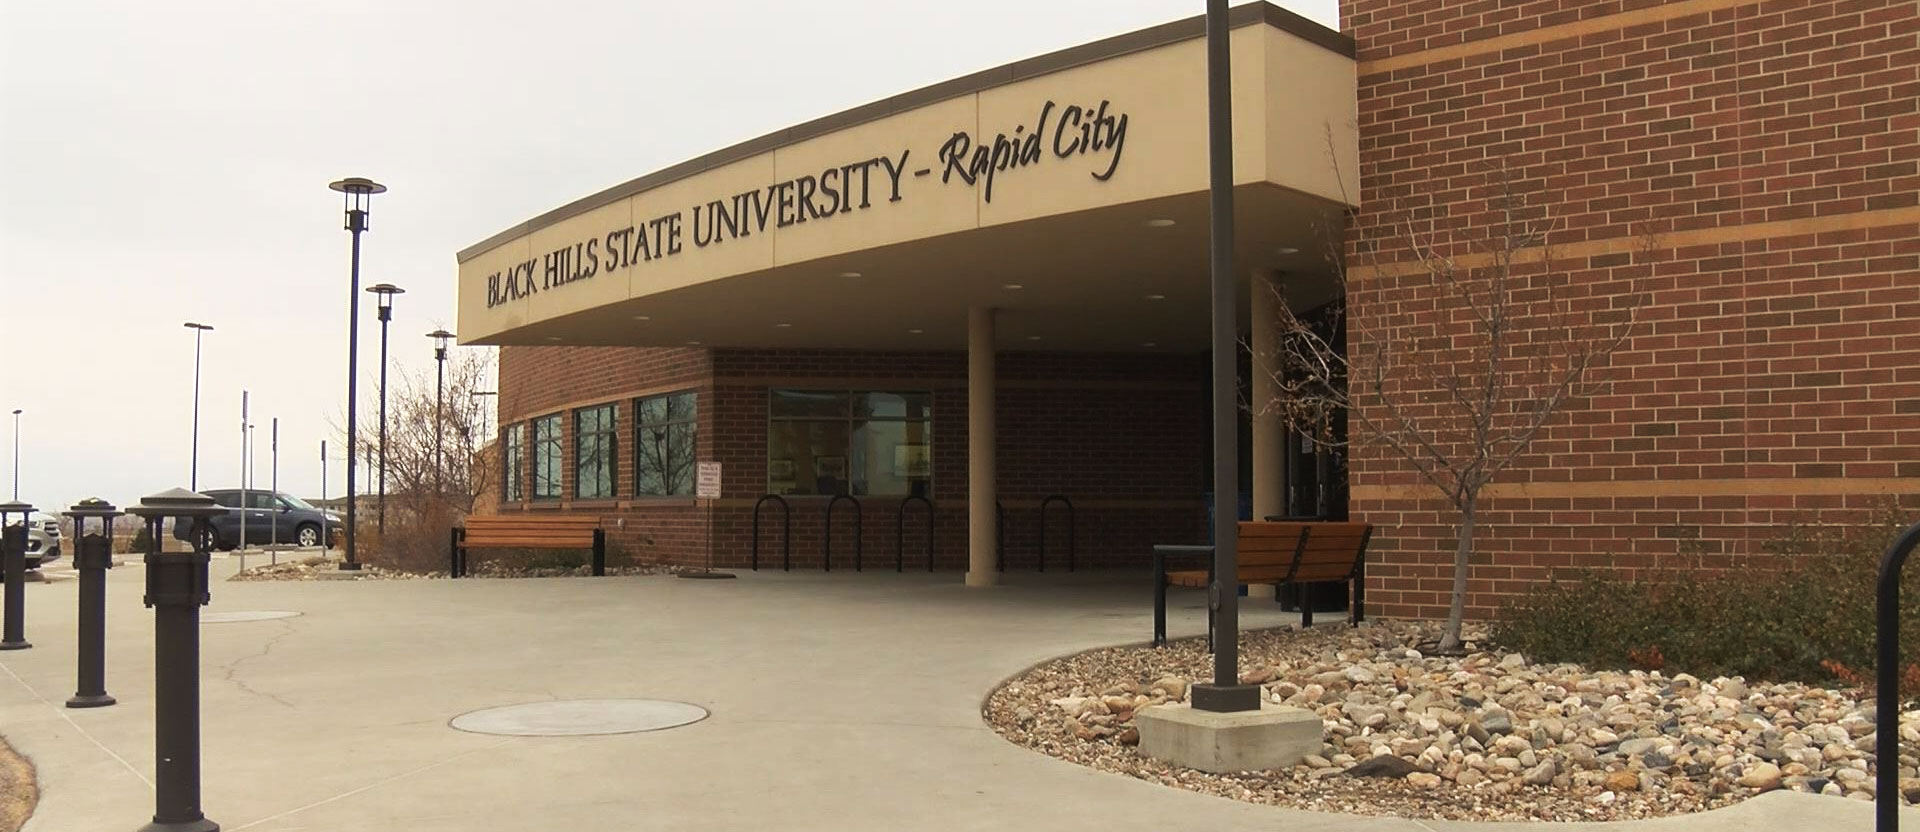 Keloland Auto Mall >> BHSU Rapid City Offering 18-Day Courses